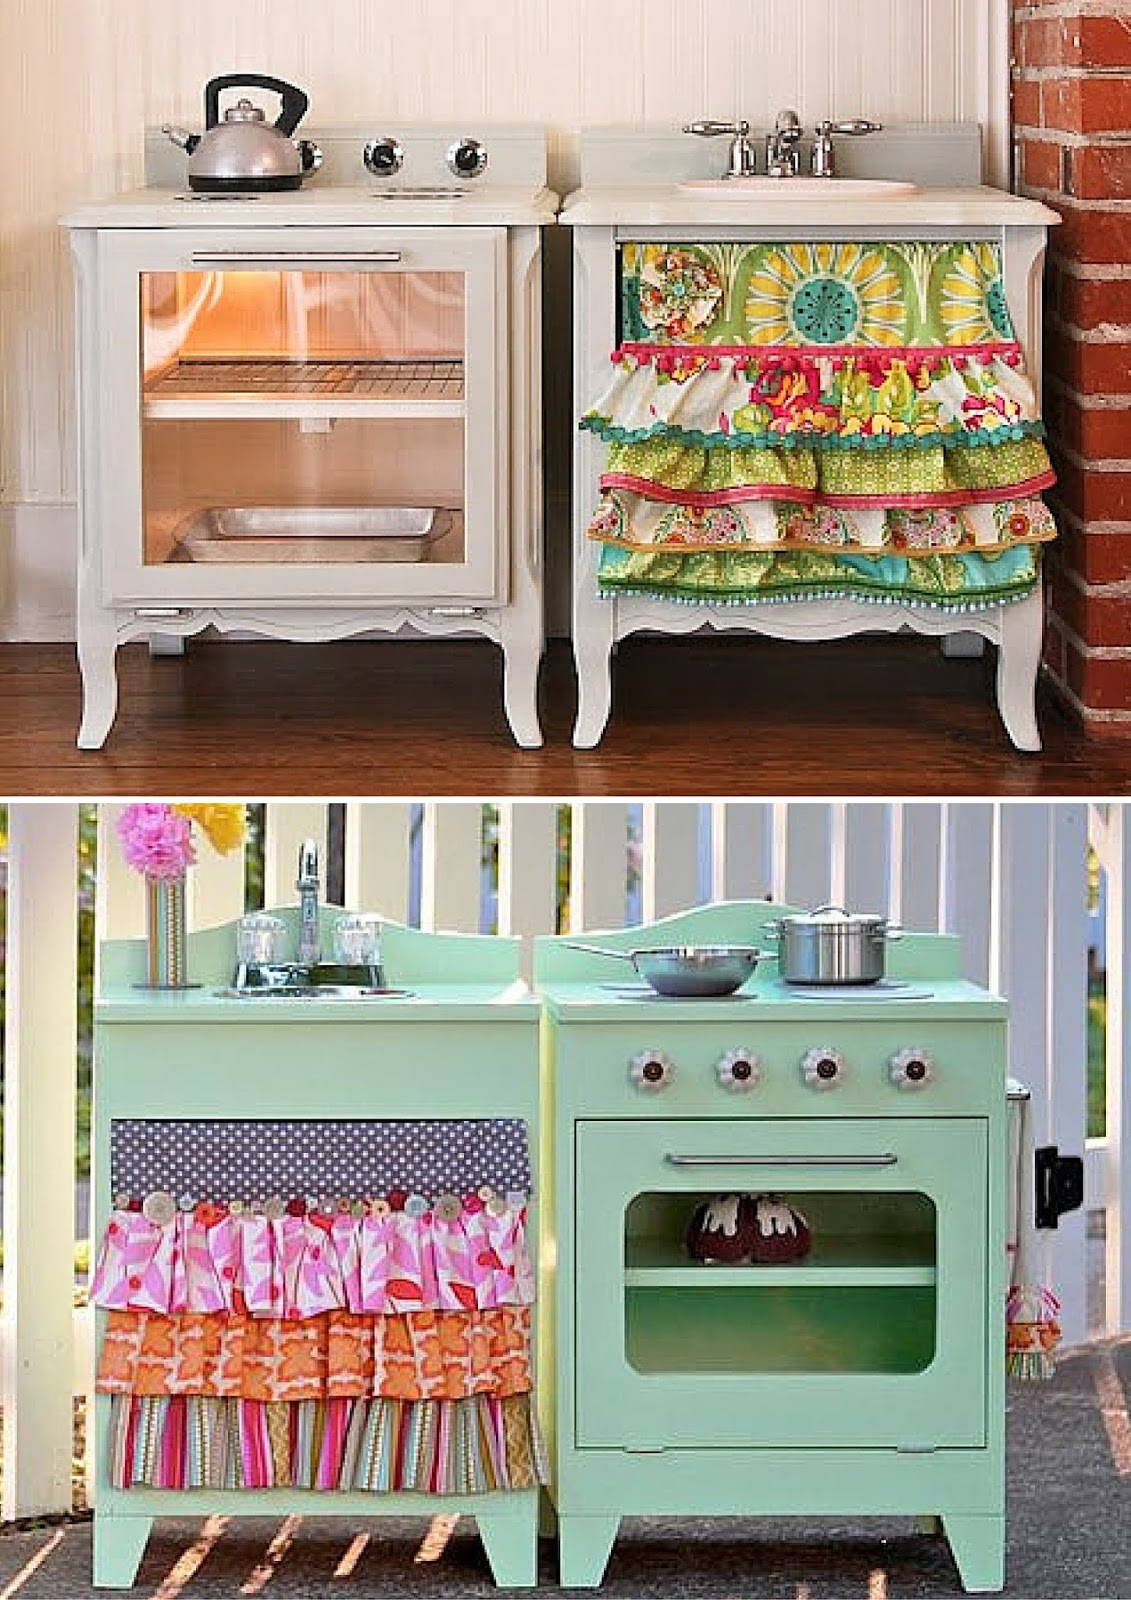 kids kitchen play DIY